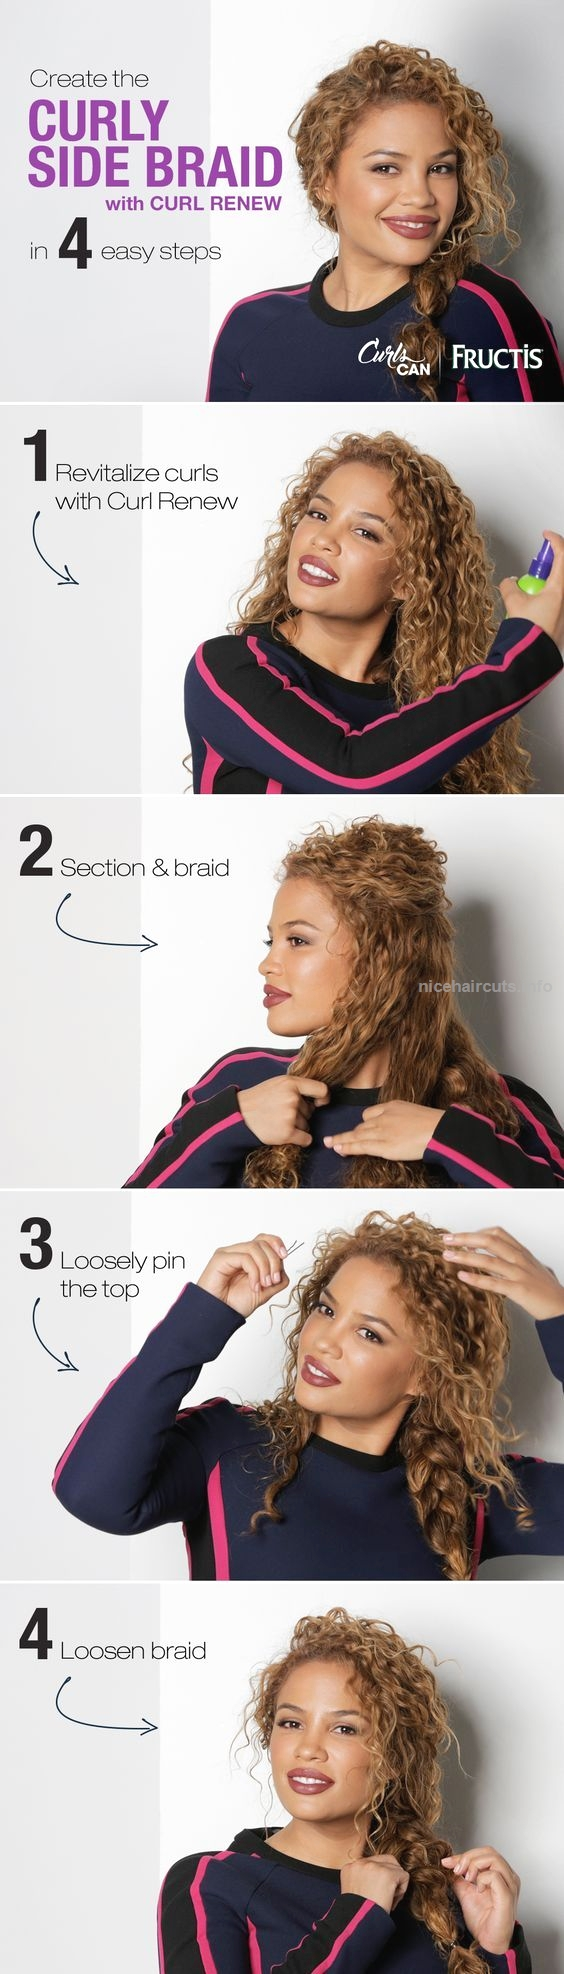 2017 05 side curls hairstyles - Curly Side Braid Curly Hair Is Perfect For A Messy Braid Watch Andrea S Choice Create This Simple Curly Side Braid Hairstyle Using Curl Renew Spray To